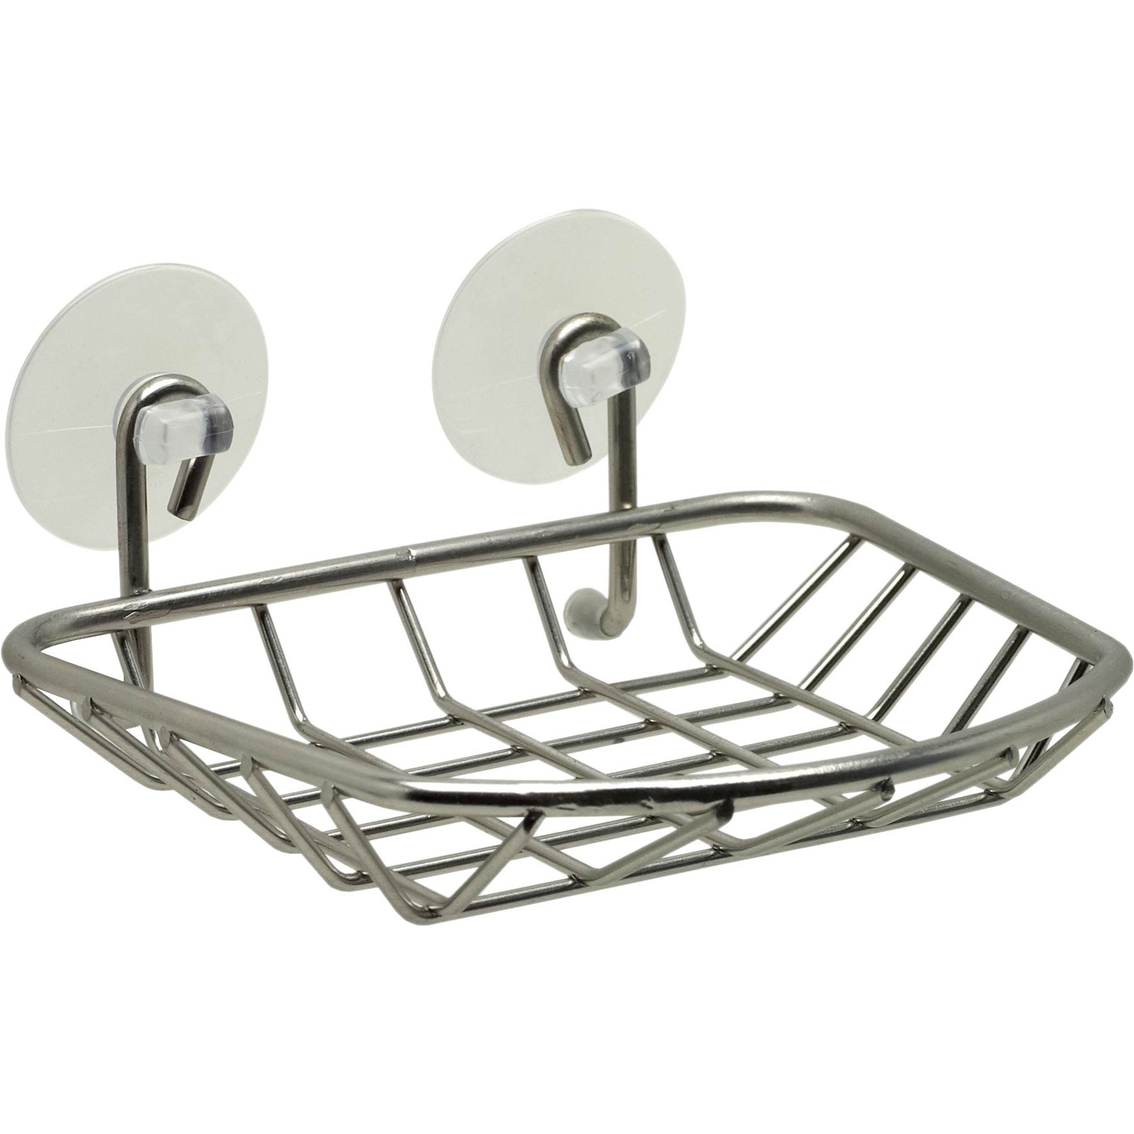 Zenith Products Brushed Nickel Suction Cup Soap Dish Caddy | Bath ...